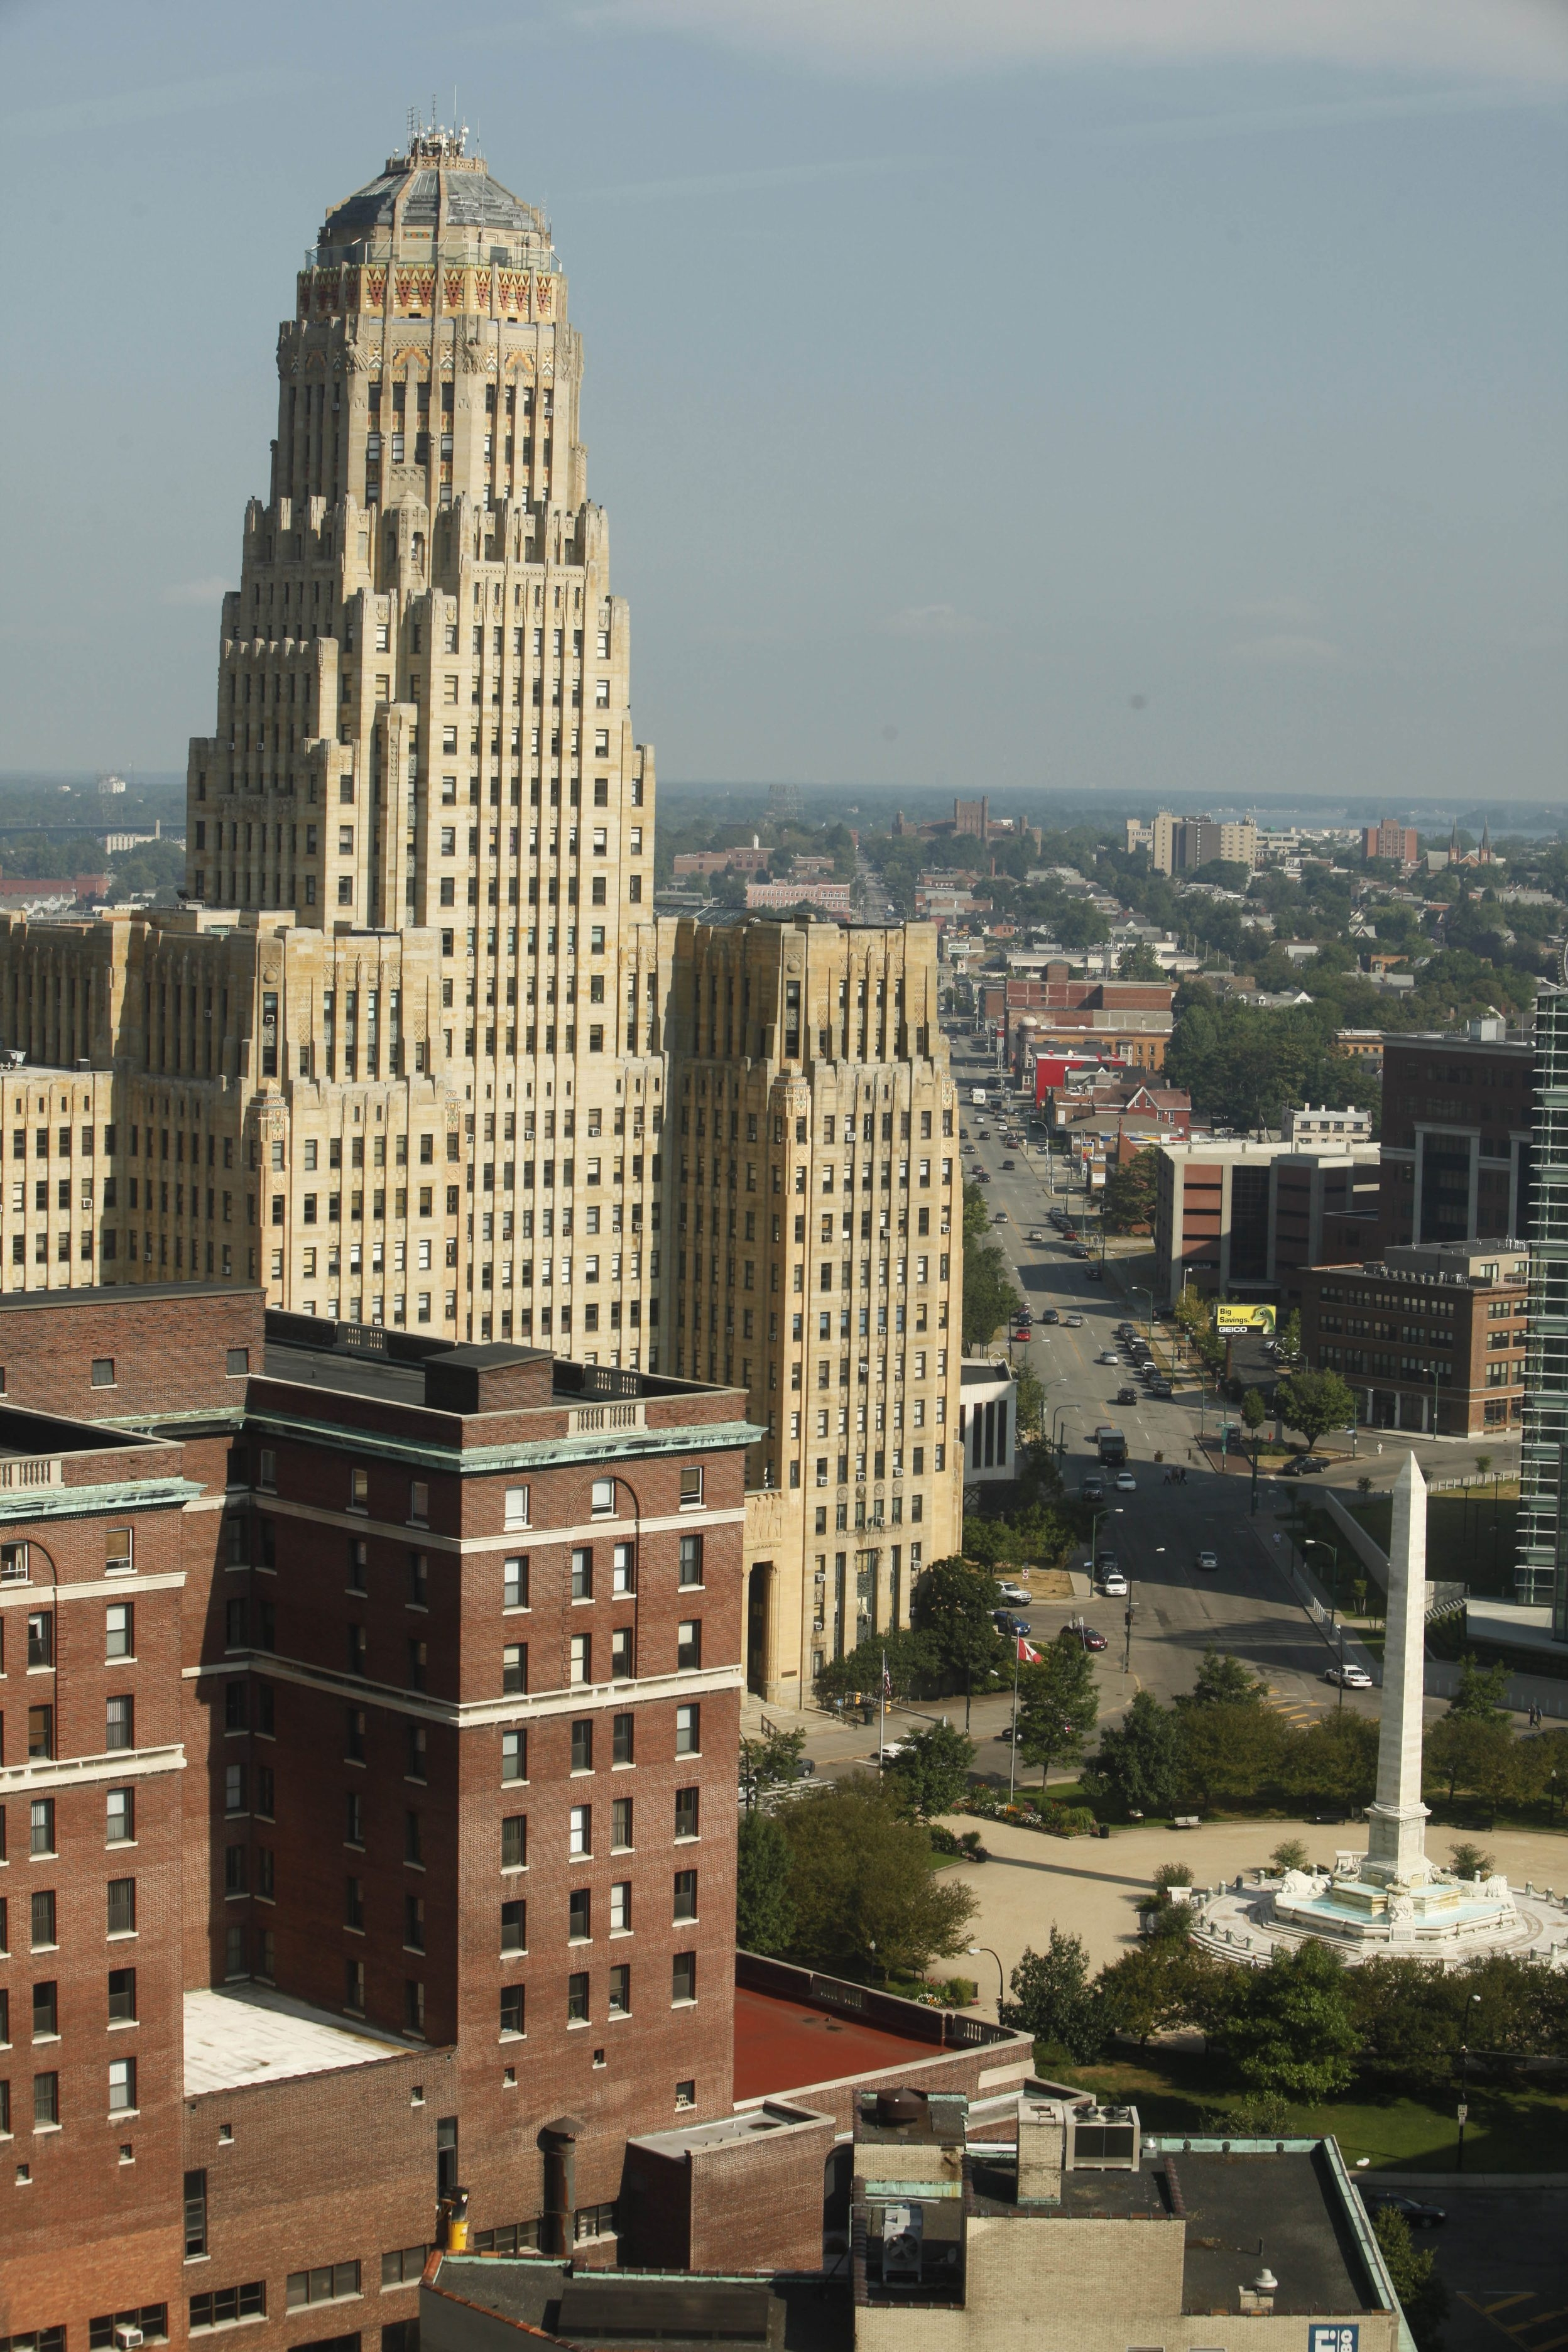 { FOR FILE } Buffalo City Hall towers over Niagara Square, as viewed from the 16th floor of the Rath Building, Monday, July 16, 2012.  {Photo by Derek Gee / Buffalo News}